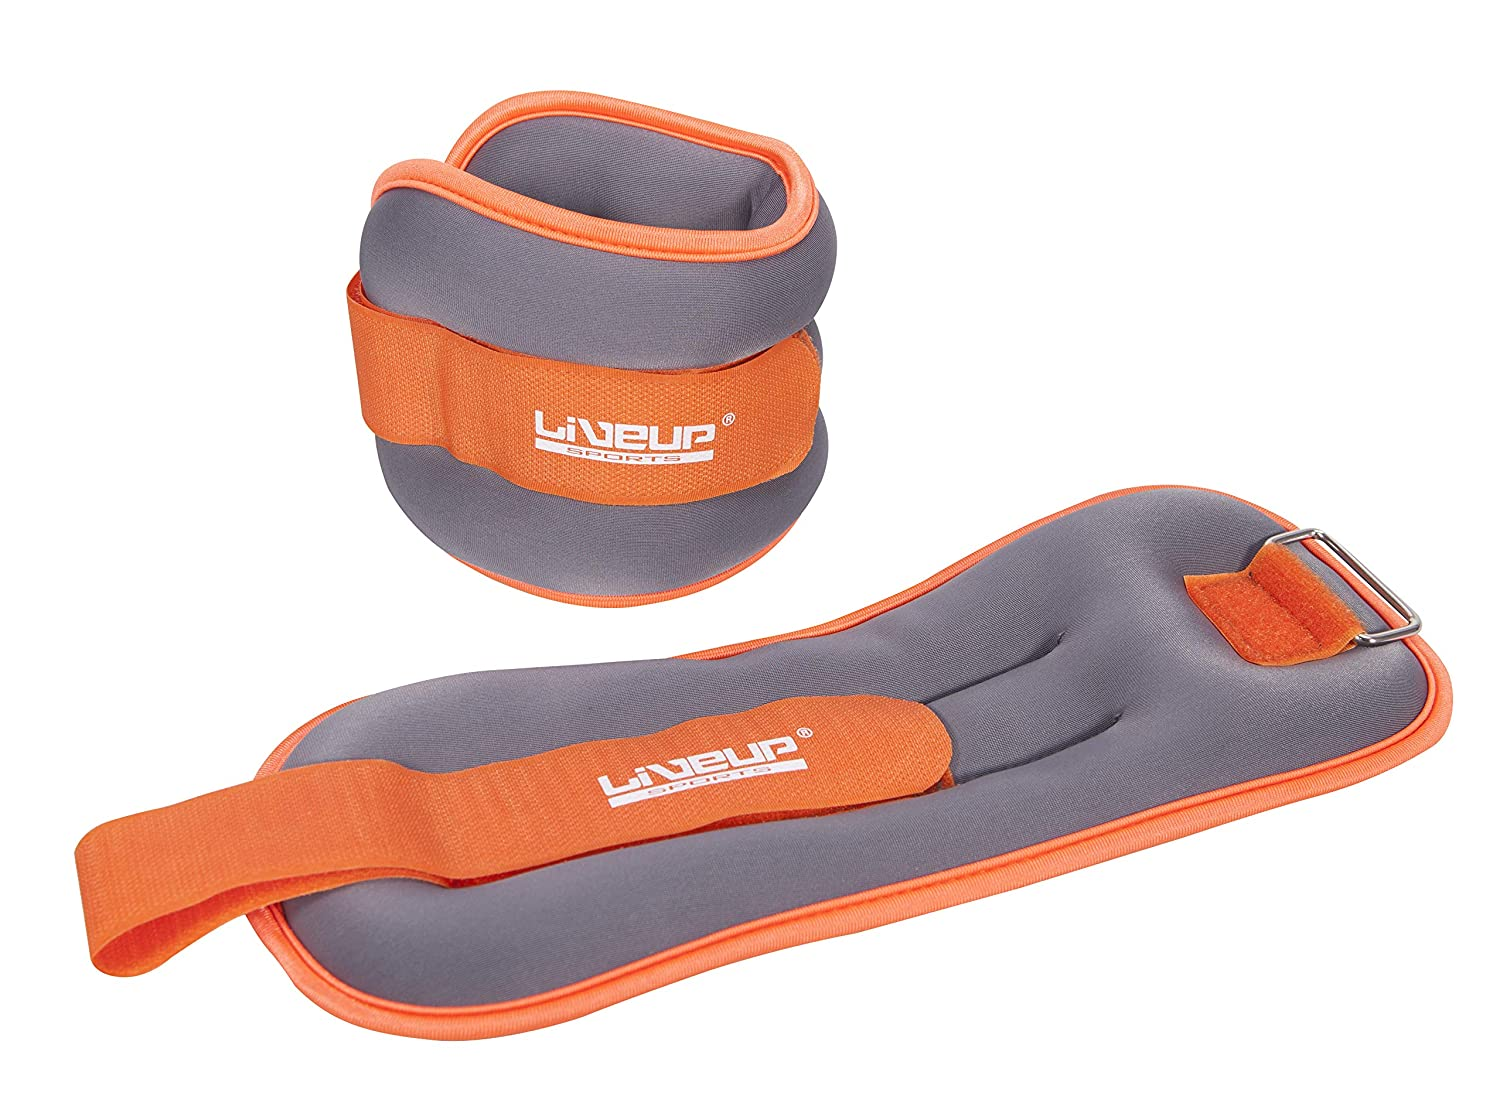 Walking Liveup Pair Wrist//Ankle Hand//Leg Weights Adjustable Strap Fitness Jogging Exercise 1.1 lbs 2.2 lbs Aerobics Gymnastics Gym